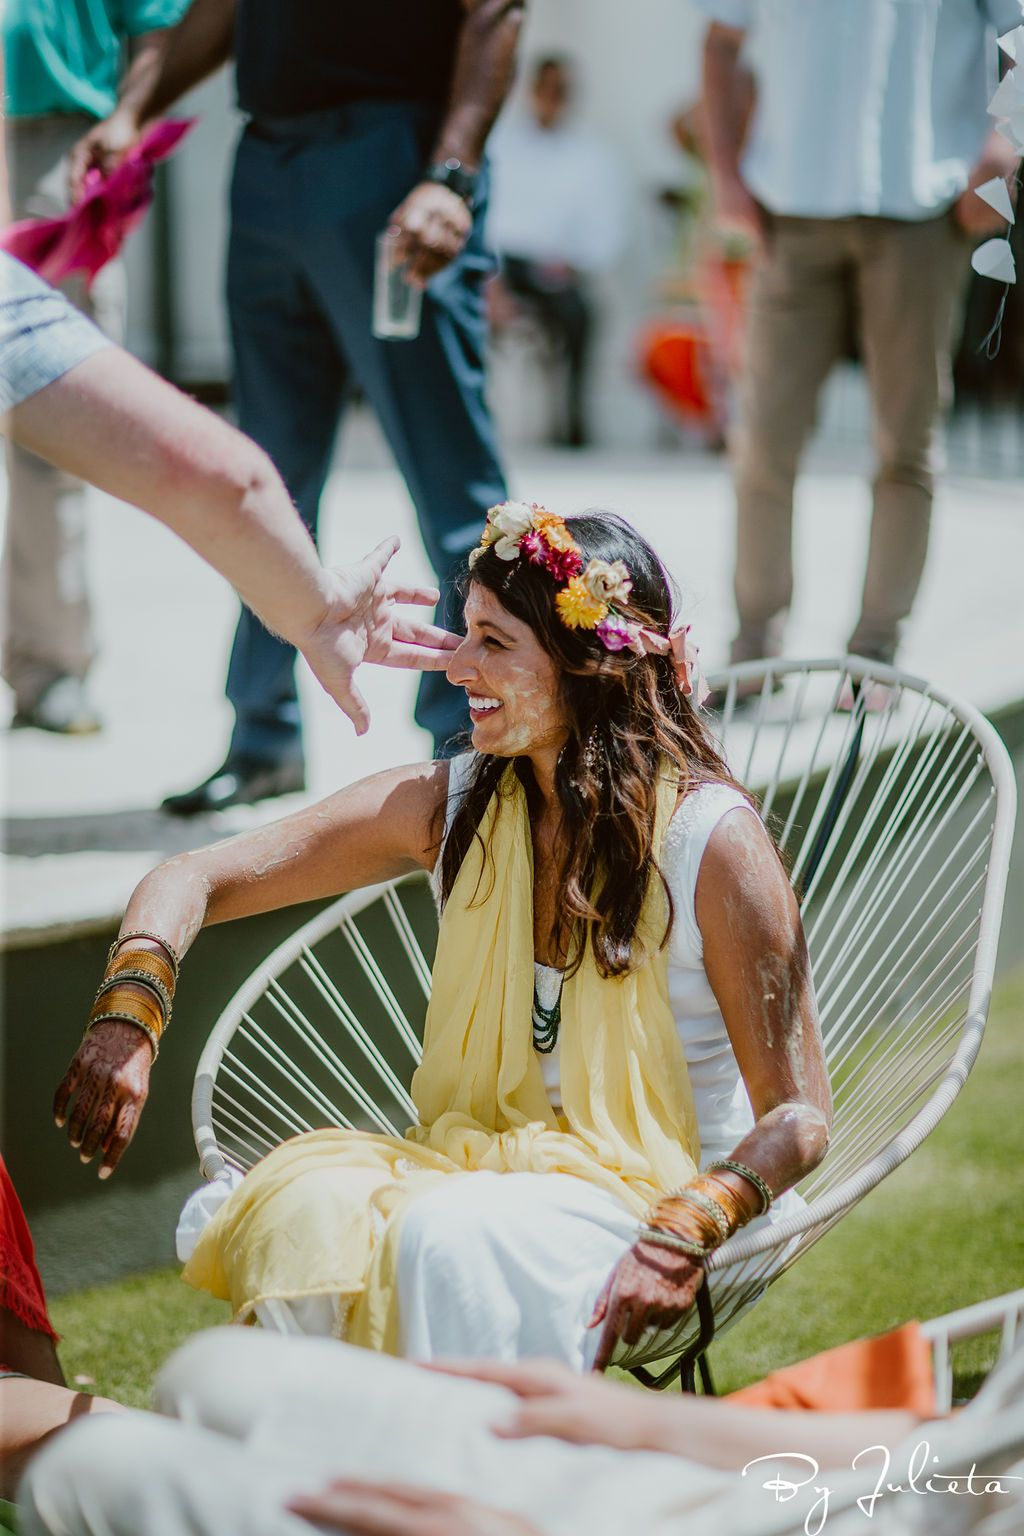 Bride getting turmeric on her during the Haldi Ceremony that took place in the morning at the Hilton Los Cabos. Cabo Wedding Services planned the whole Indian Wedding weekend.